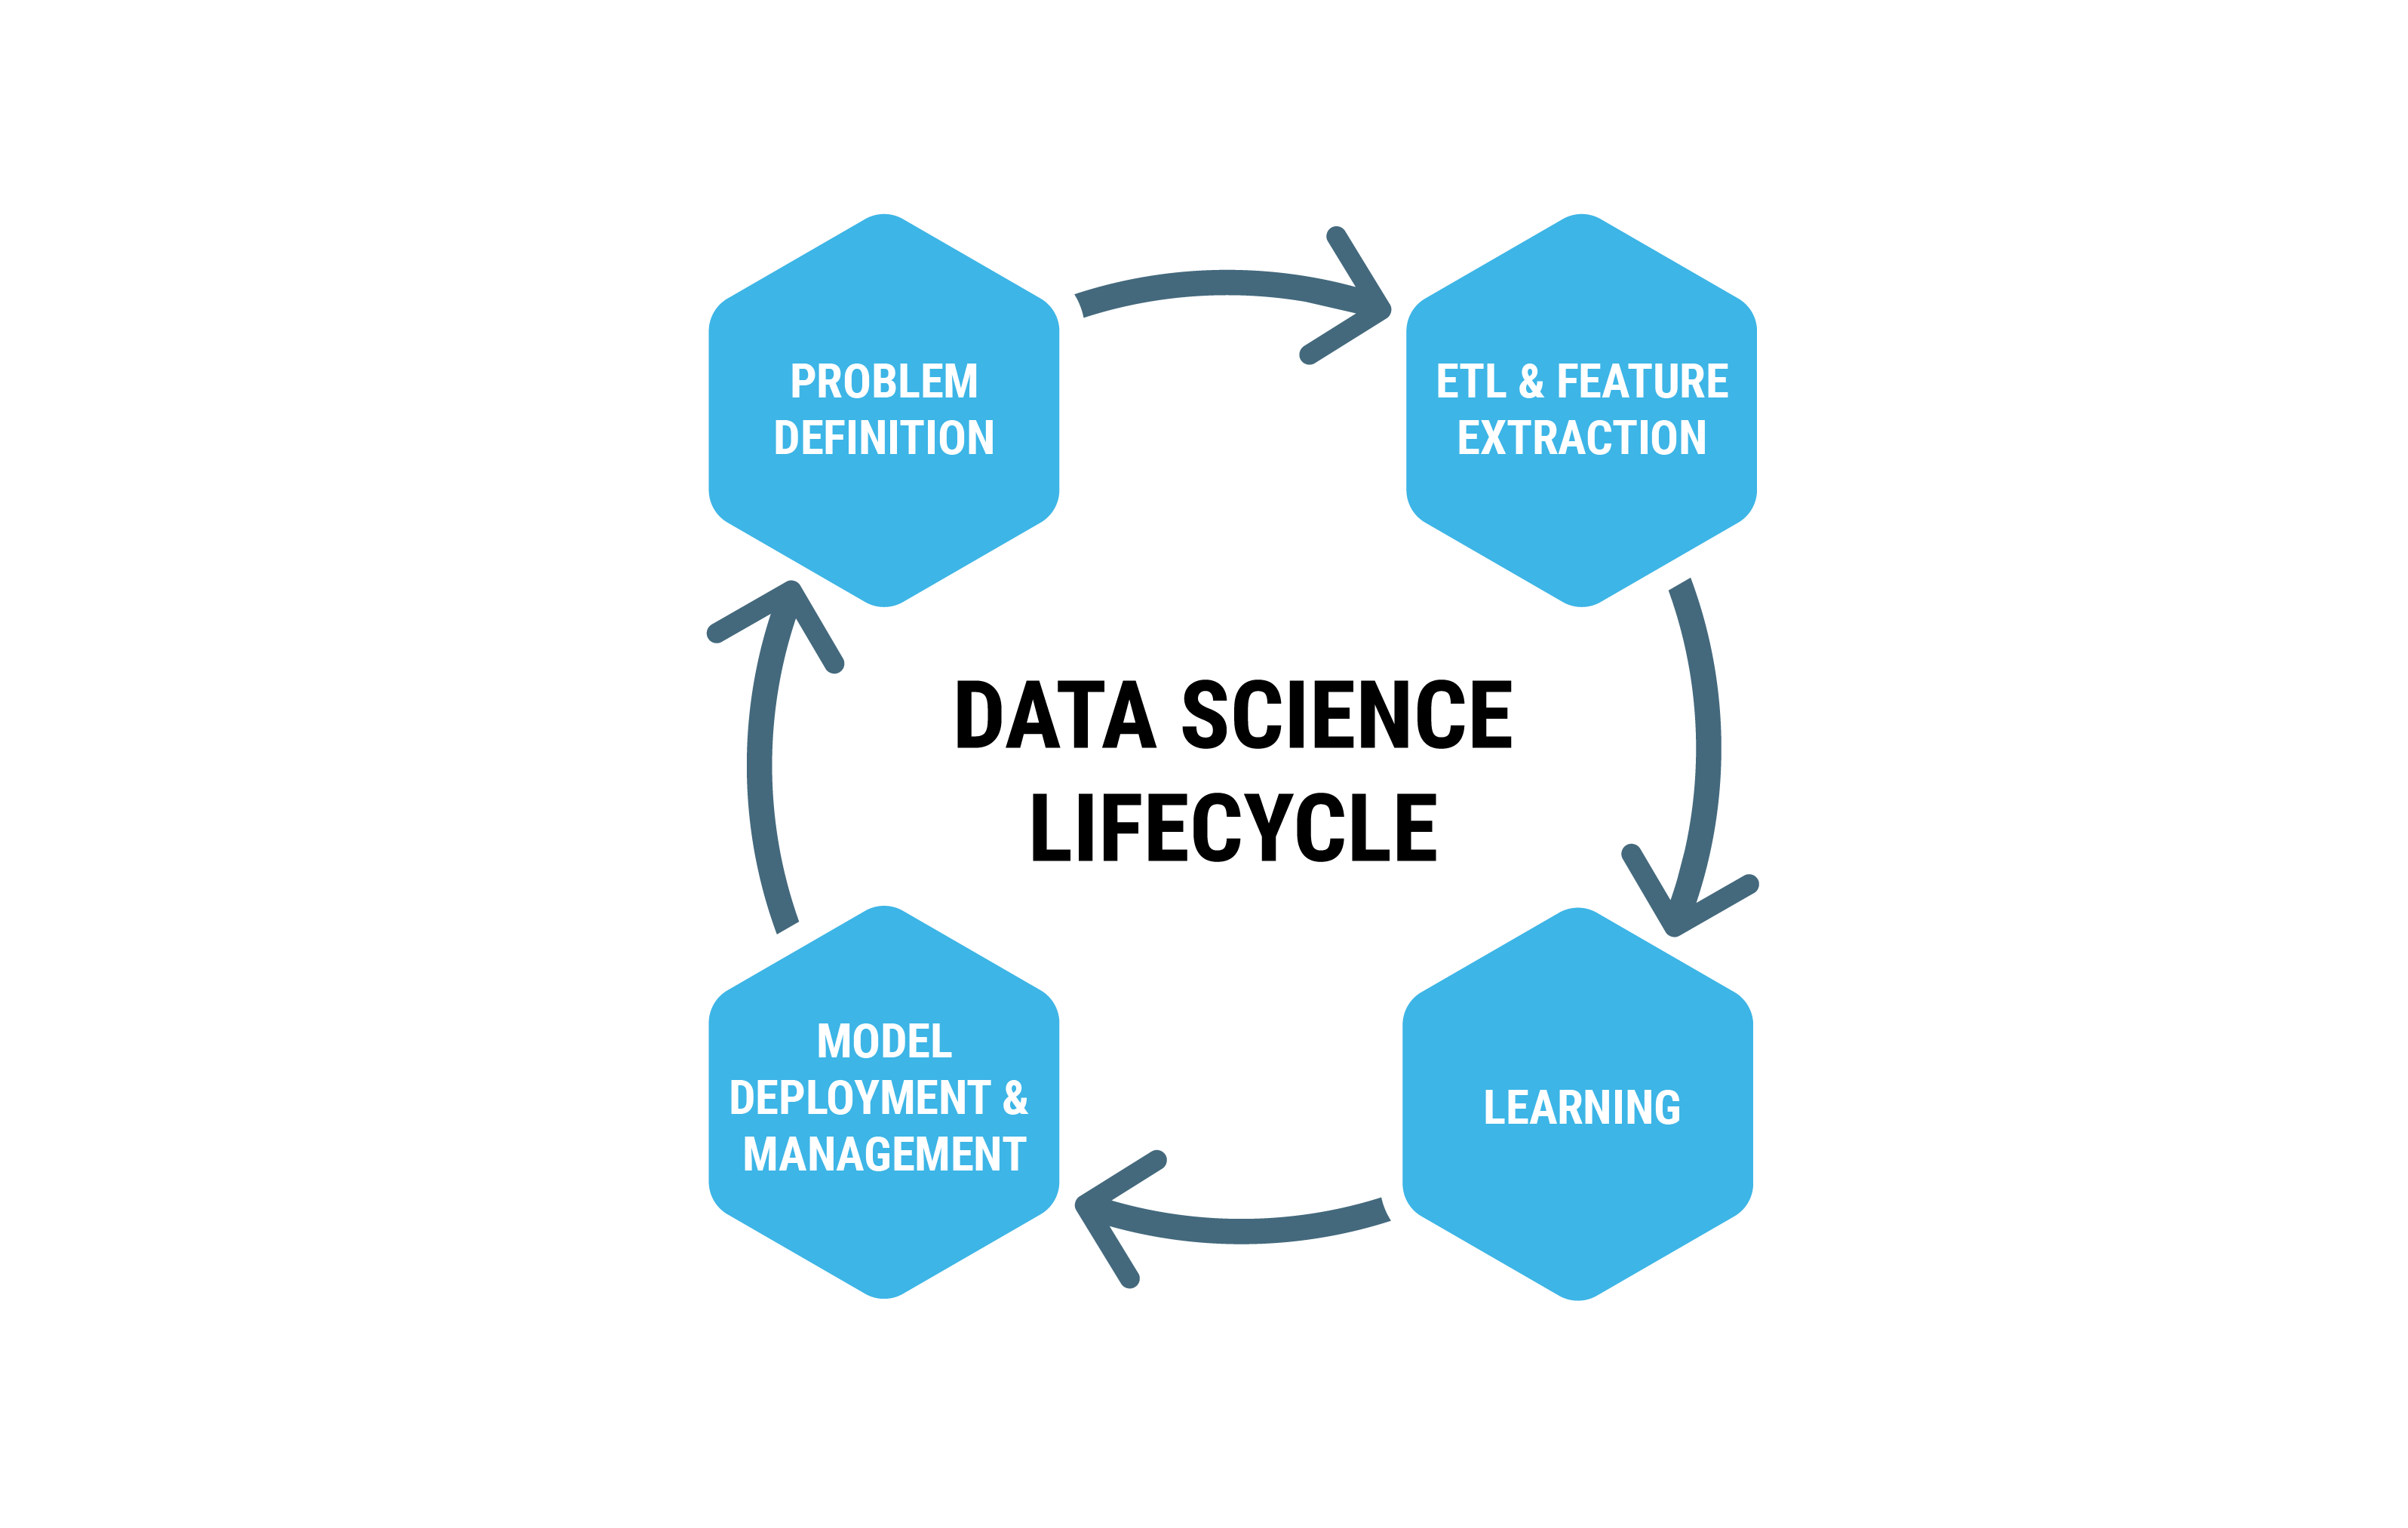 About data science lifecycle